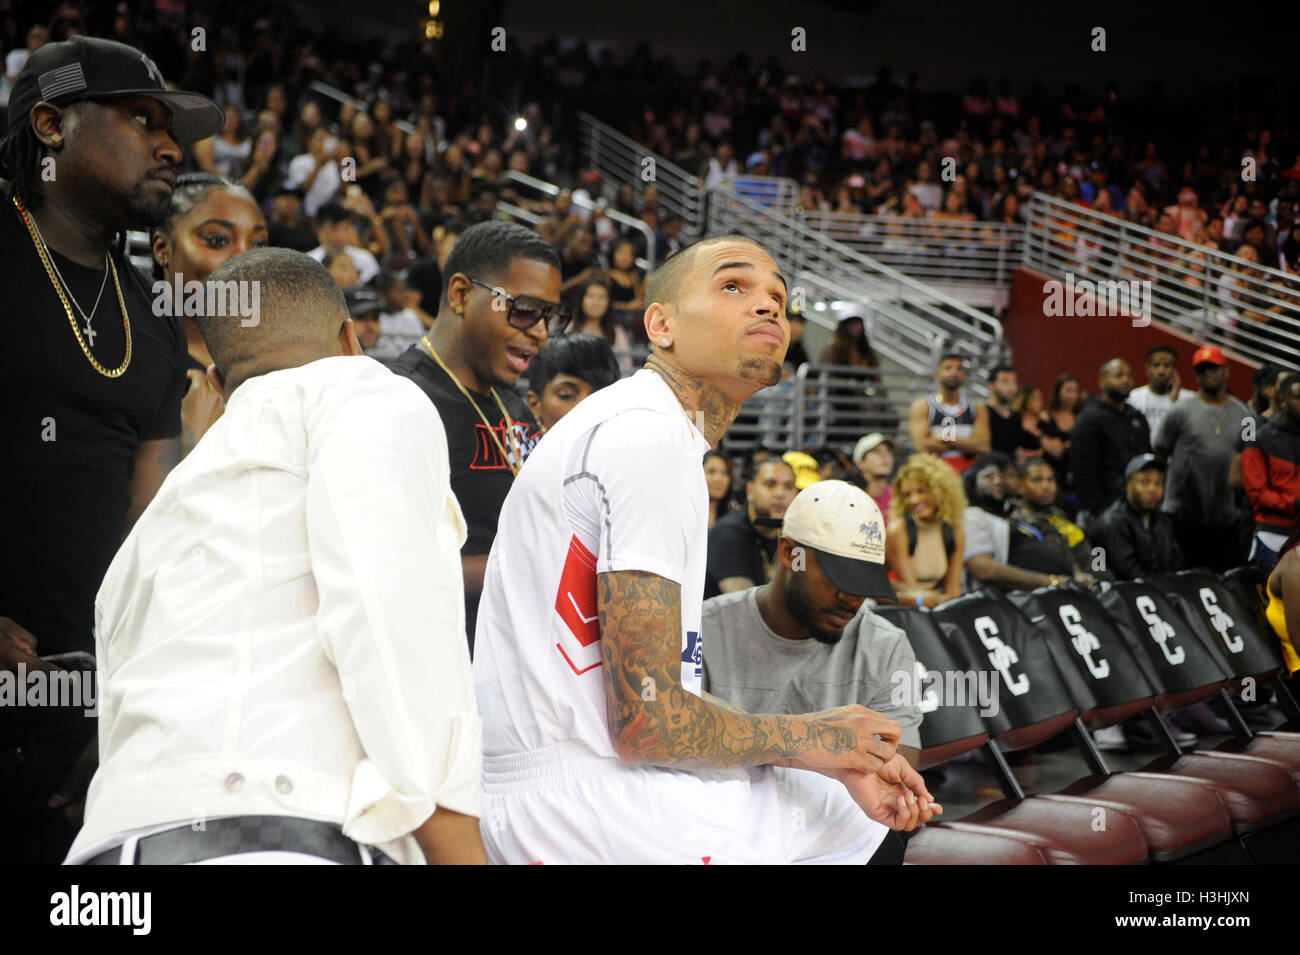 Aces Charity Celebrity Basketball Game Stock Photos and ...